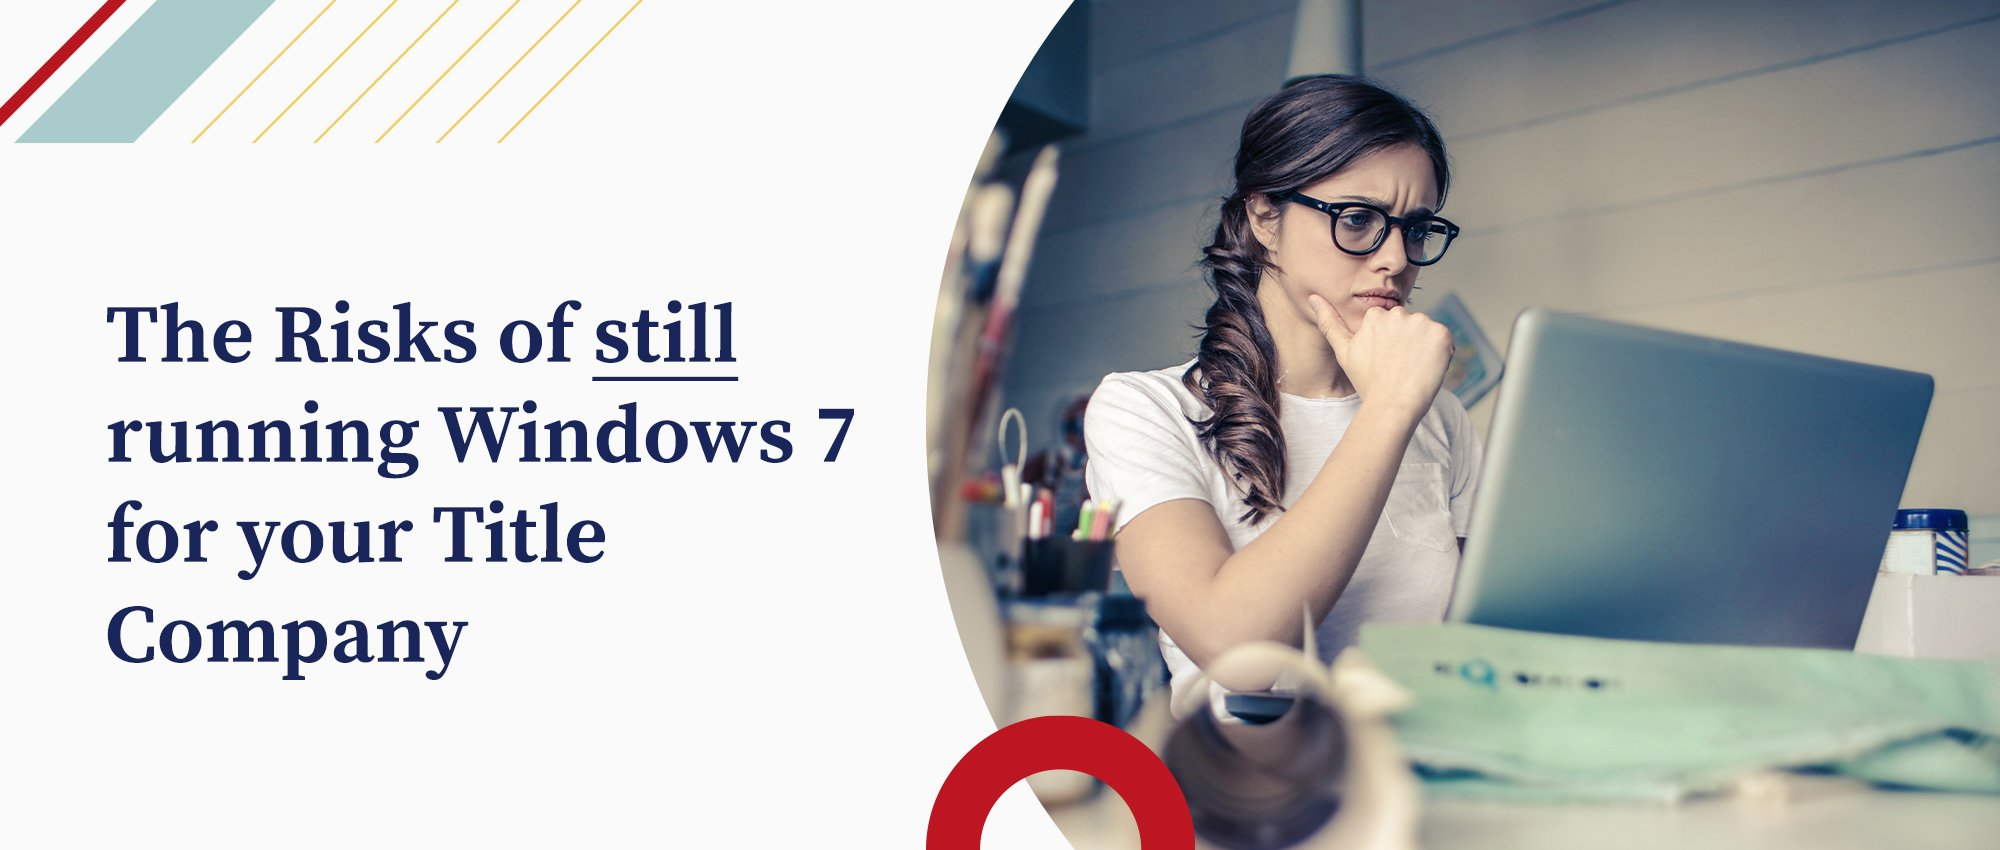 The Risks of Still Running Windows 7 for your Title Company - graphic of an woman